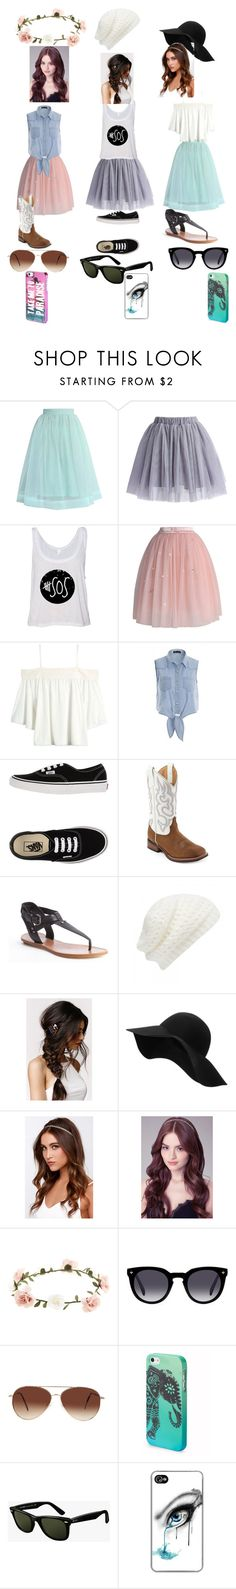 """besties"" by jordenbaker ❤ liked on Polyvore featuring Chicwish, Vans, Laredo, belle by Sigerson Morrison, Forever New, With Love From CA, MANGO, Bebe, Accessorize and Eloquii"